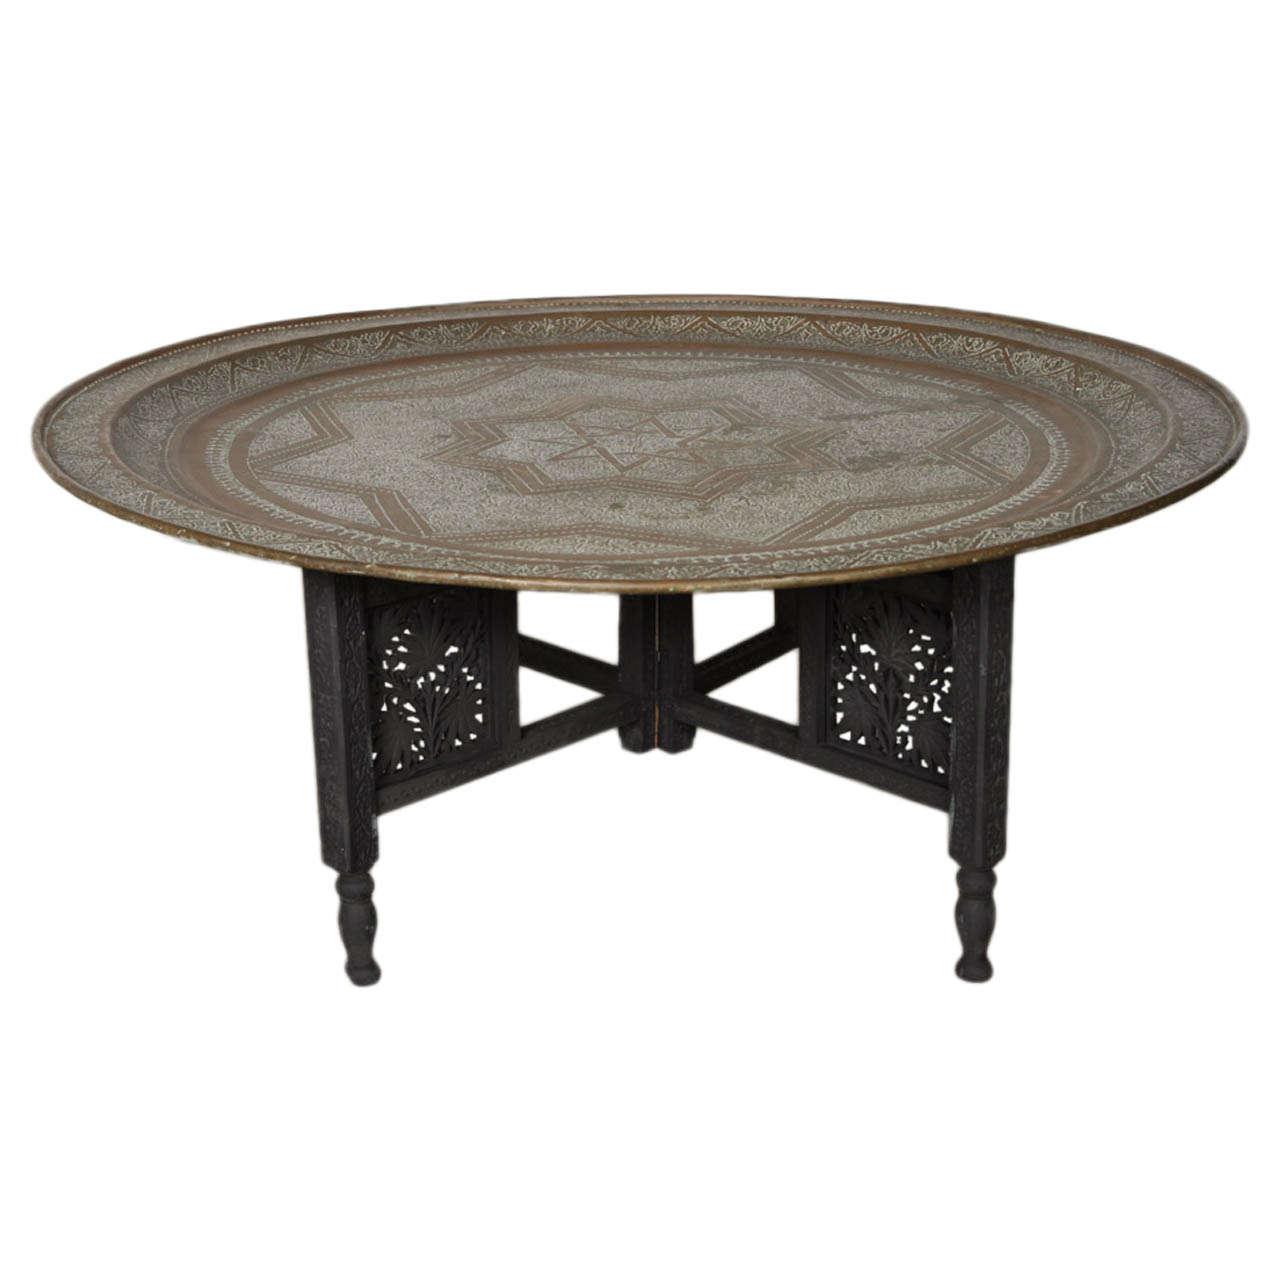 Moroccan Round Br Tray Coffee Table For